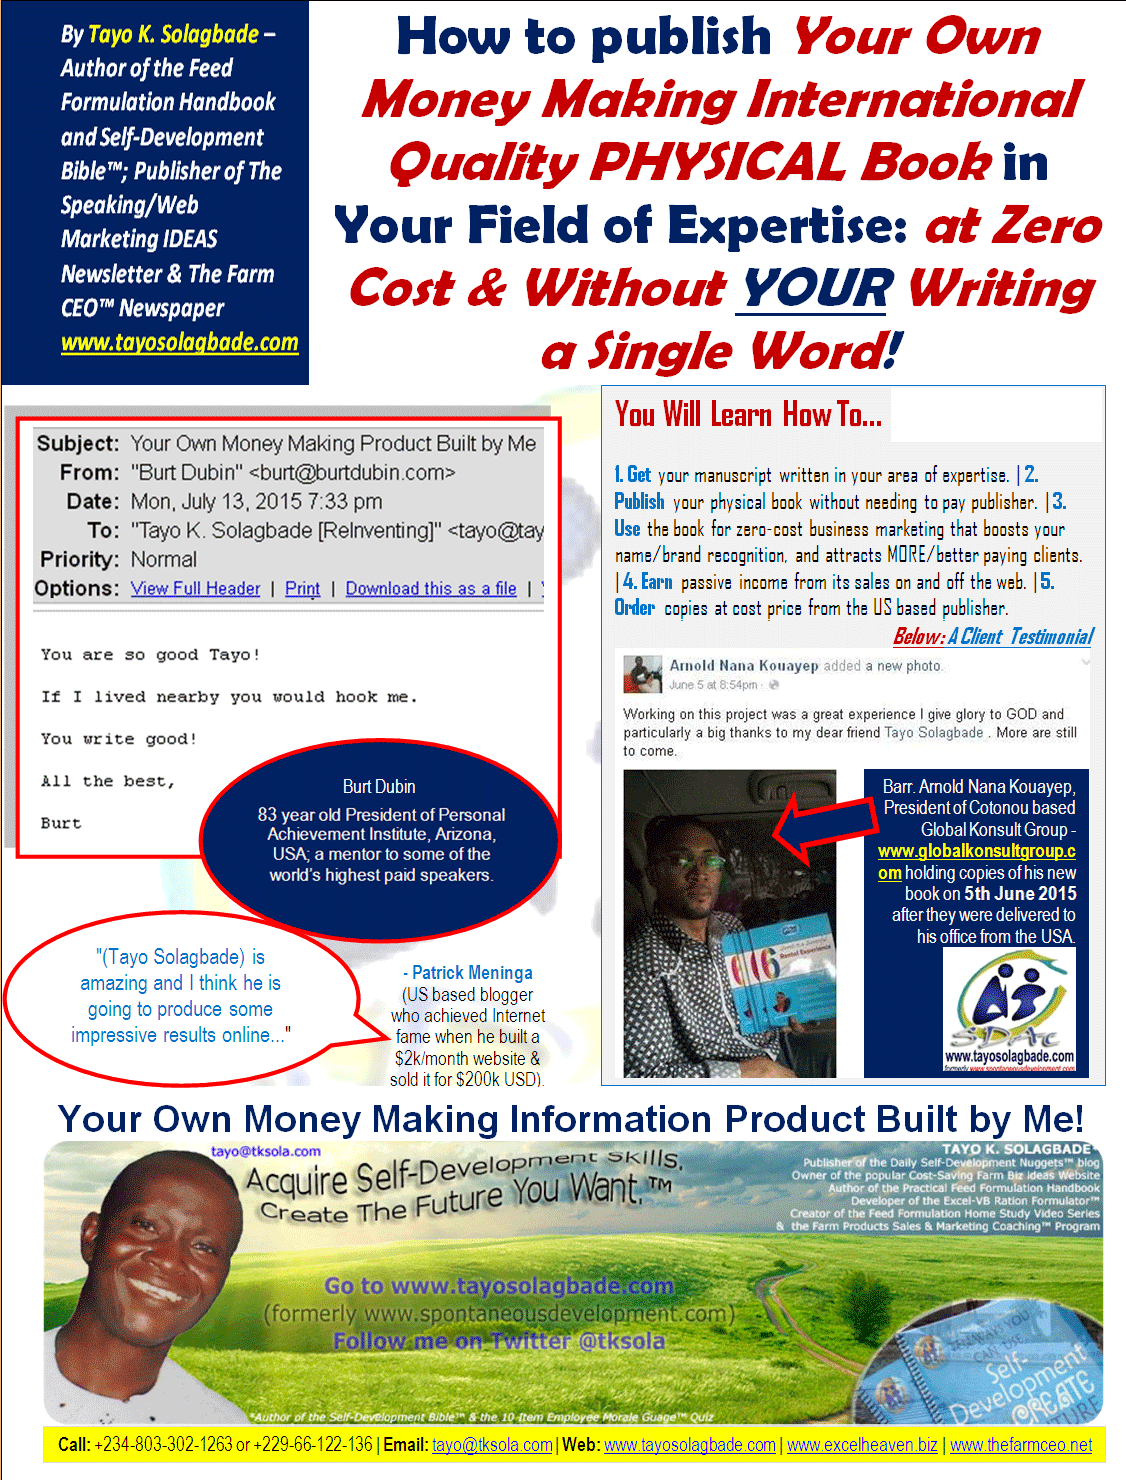 Click to view large version of this flyer, in which a client and 2 proven experts comments about me are reproduced